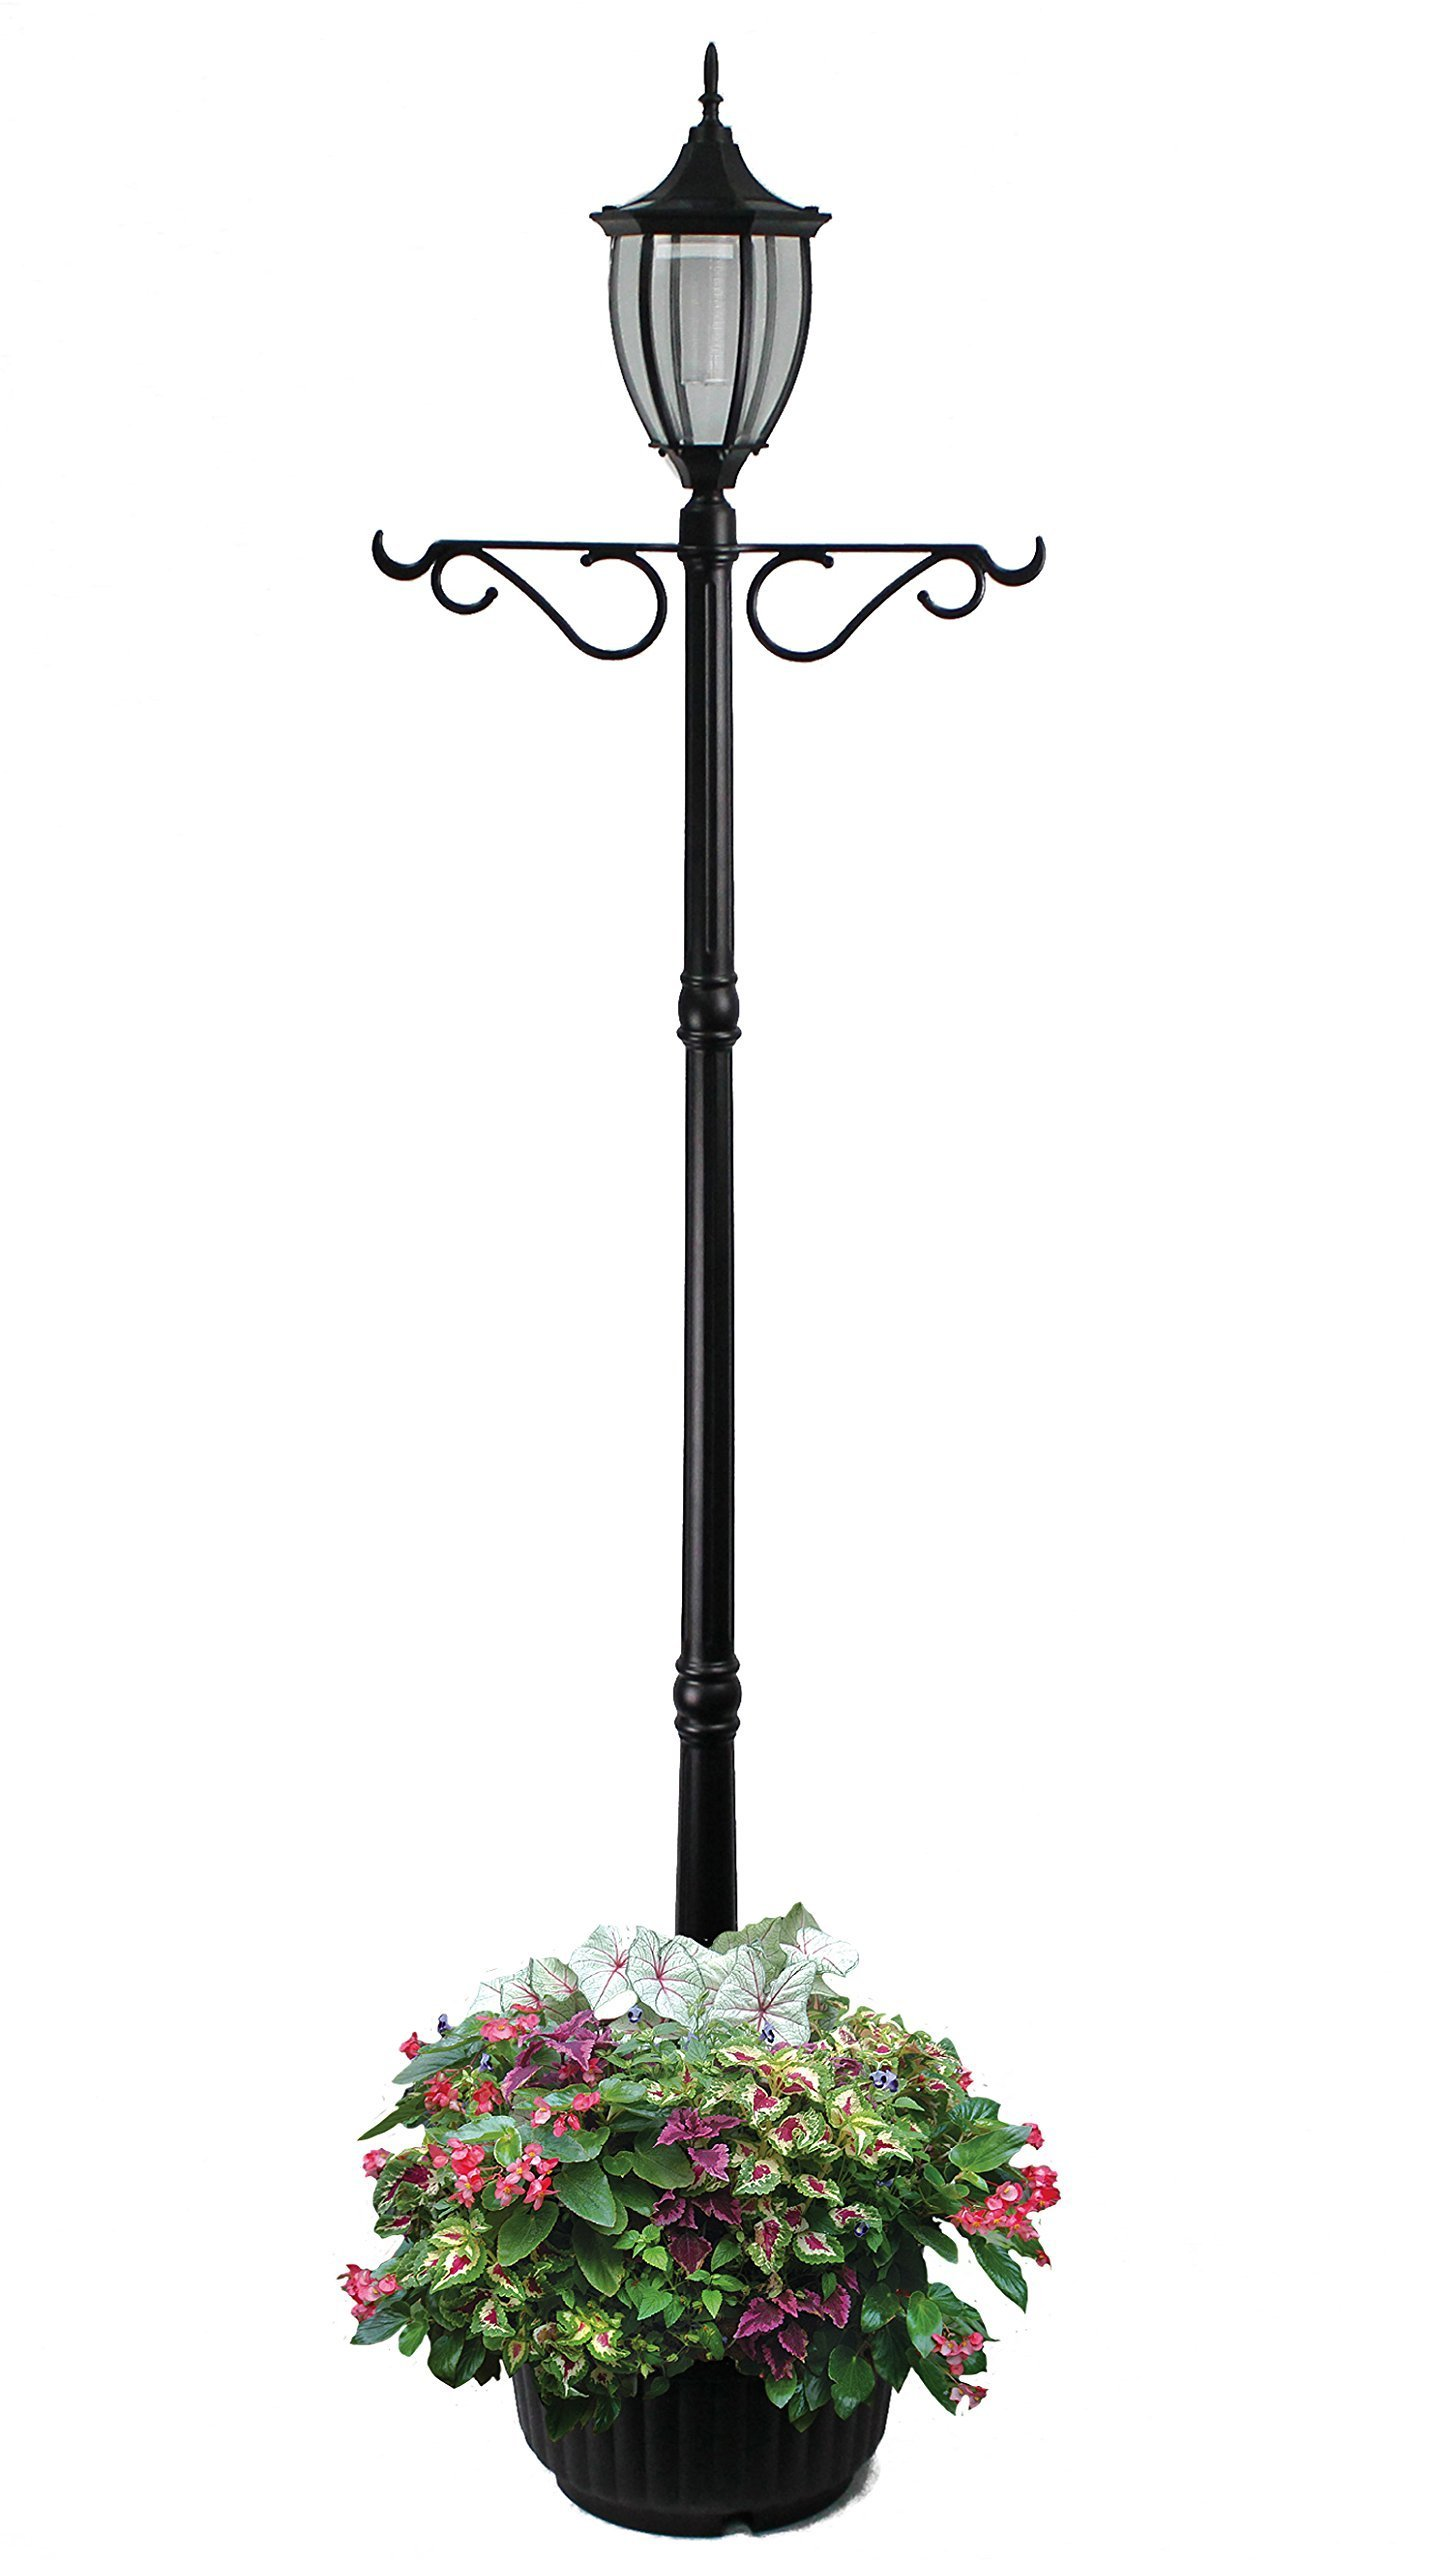 Sun-Ray 312066 Crestmont Single-Head Solar Lamp Post and Planter with Plant Hanger, 7', Black, Batteries Included